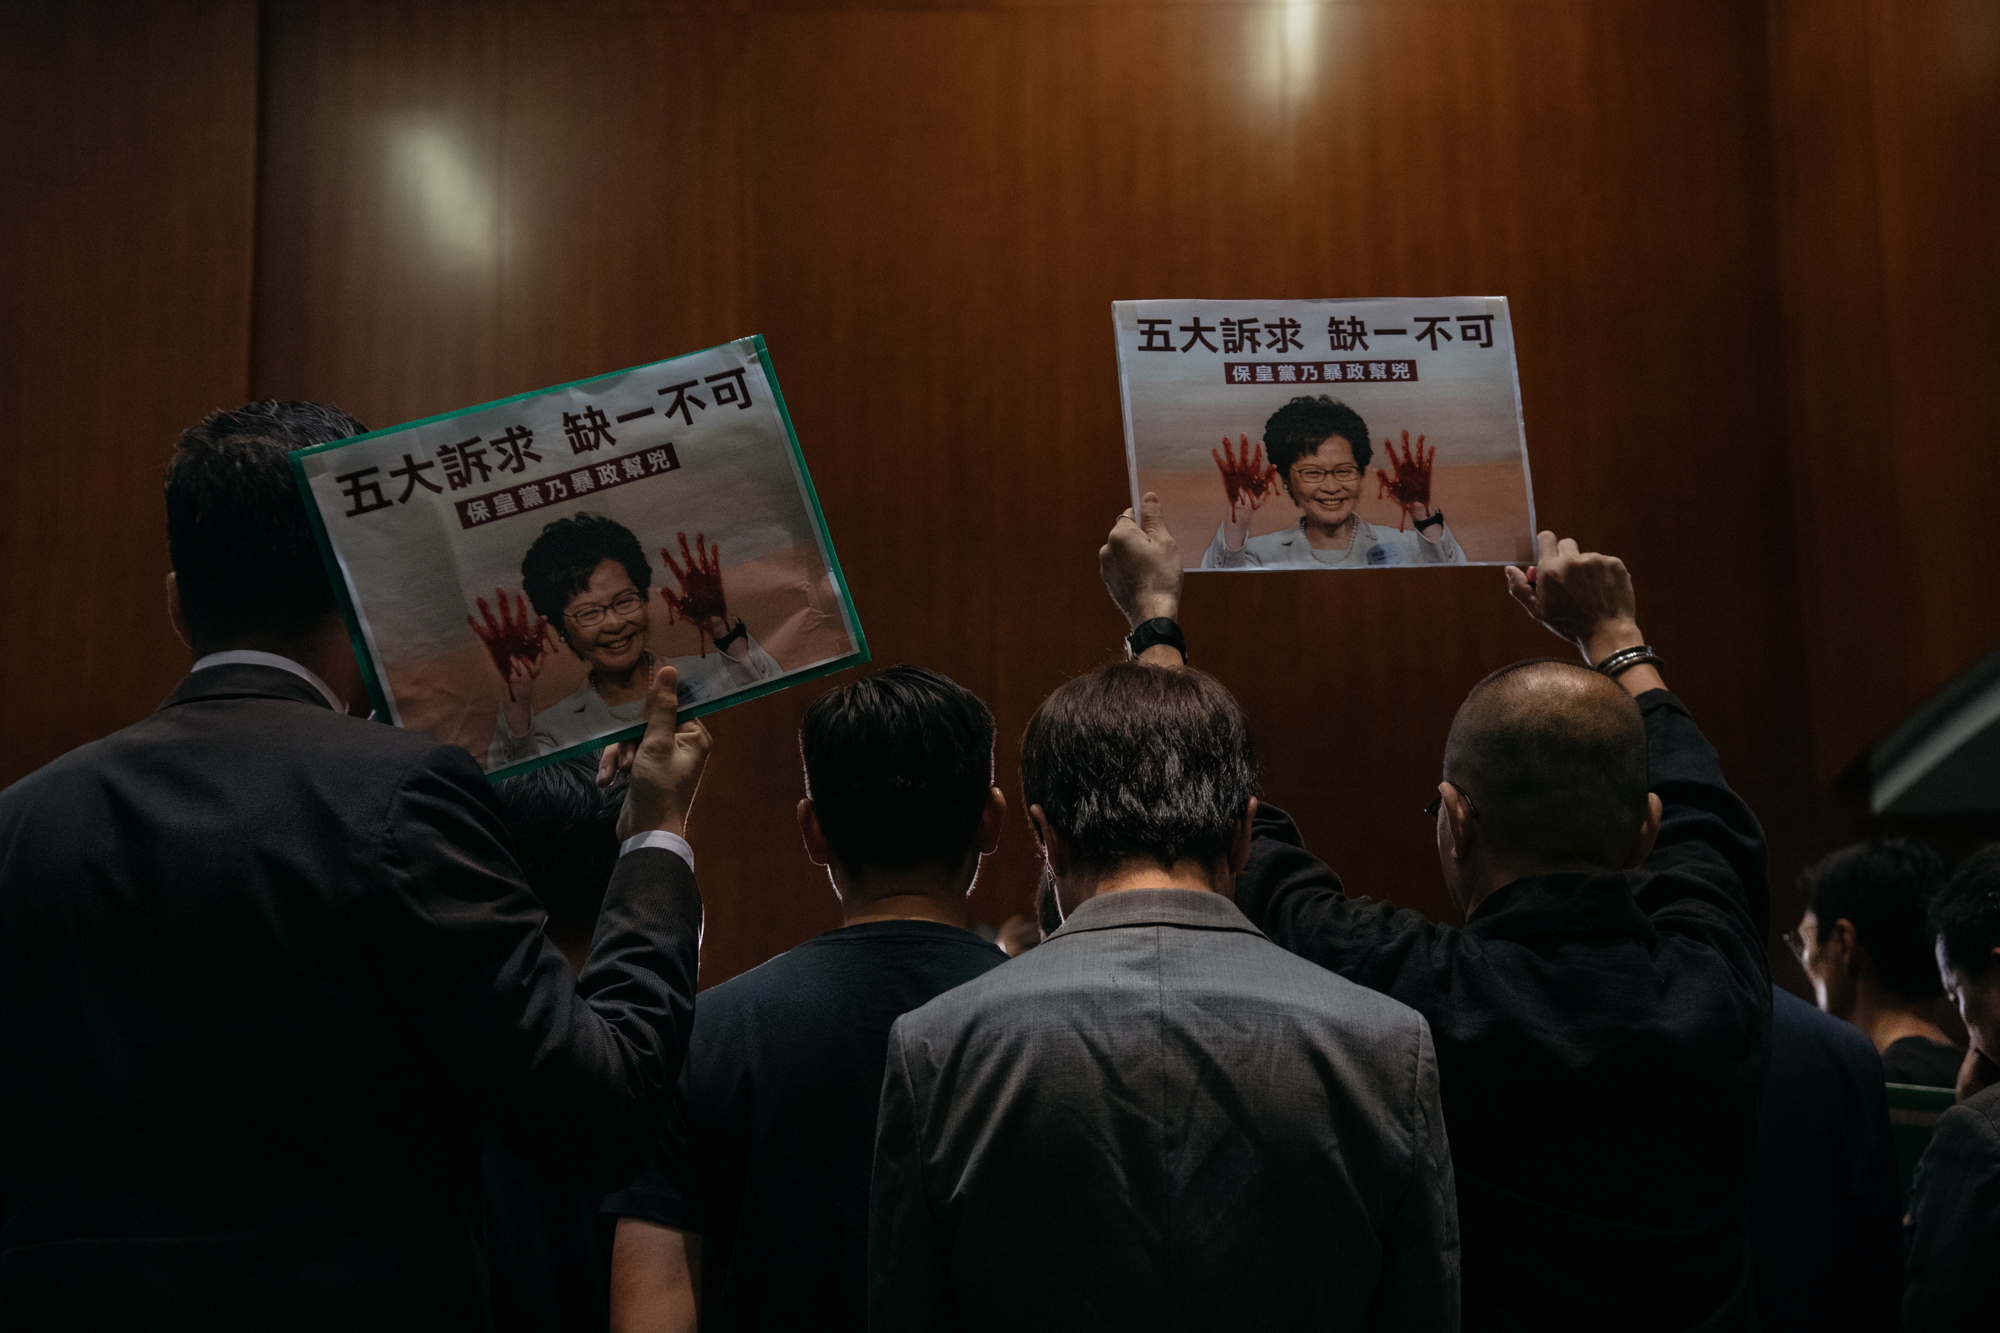 Pan-democratic legislators raise posters during a press conference after Hong Kong Chief Executive Carrie Lam left the Legislative Council on October 16, 2019 in Hong Kong, China. (Photo by Billy H.C. Kwok/Getty Images)